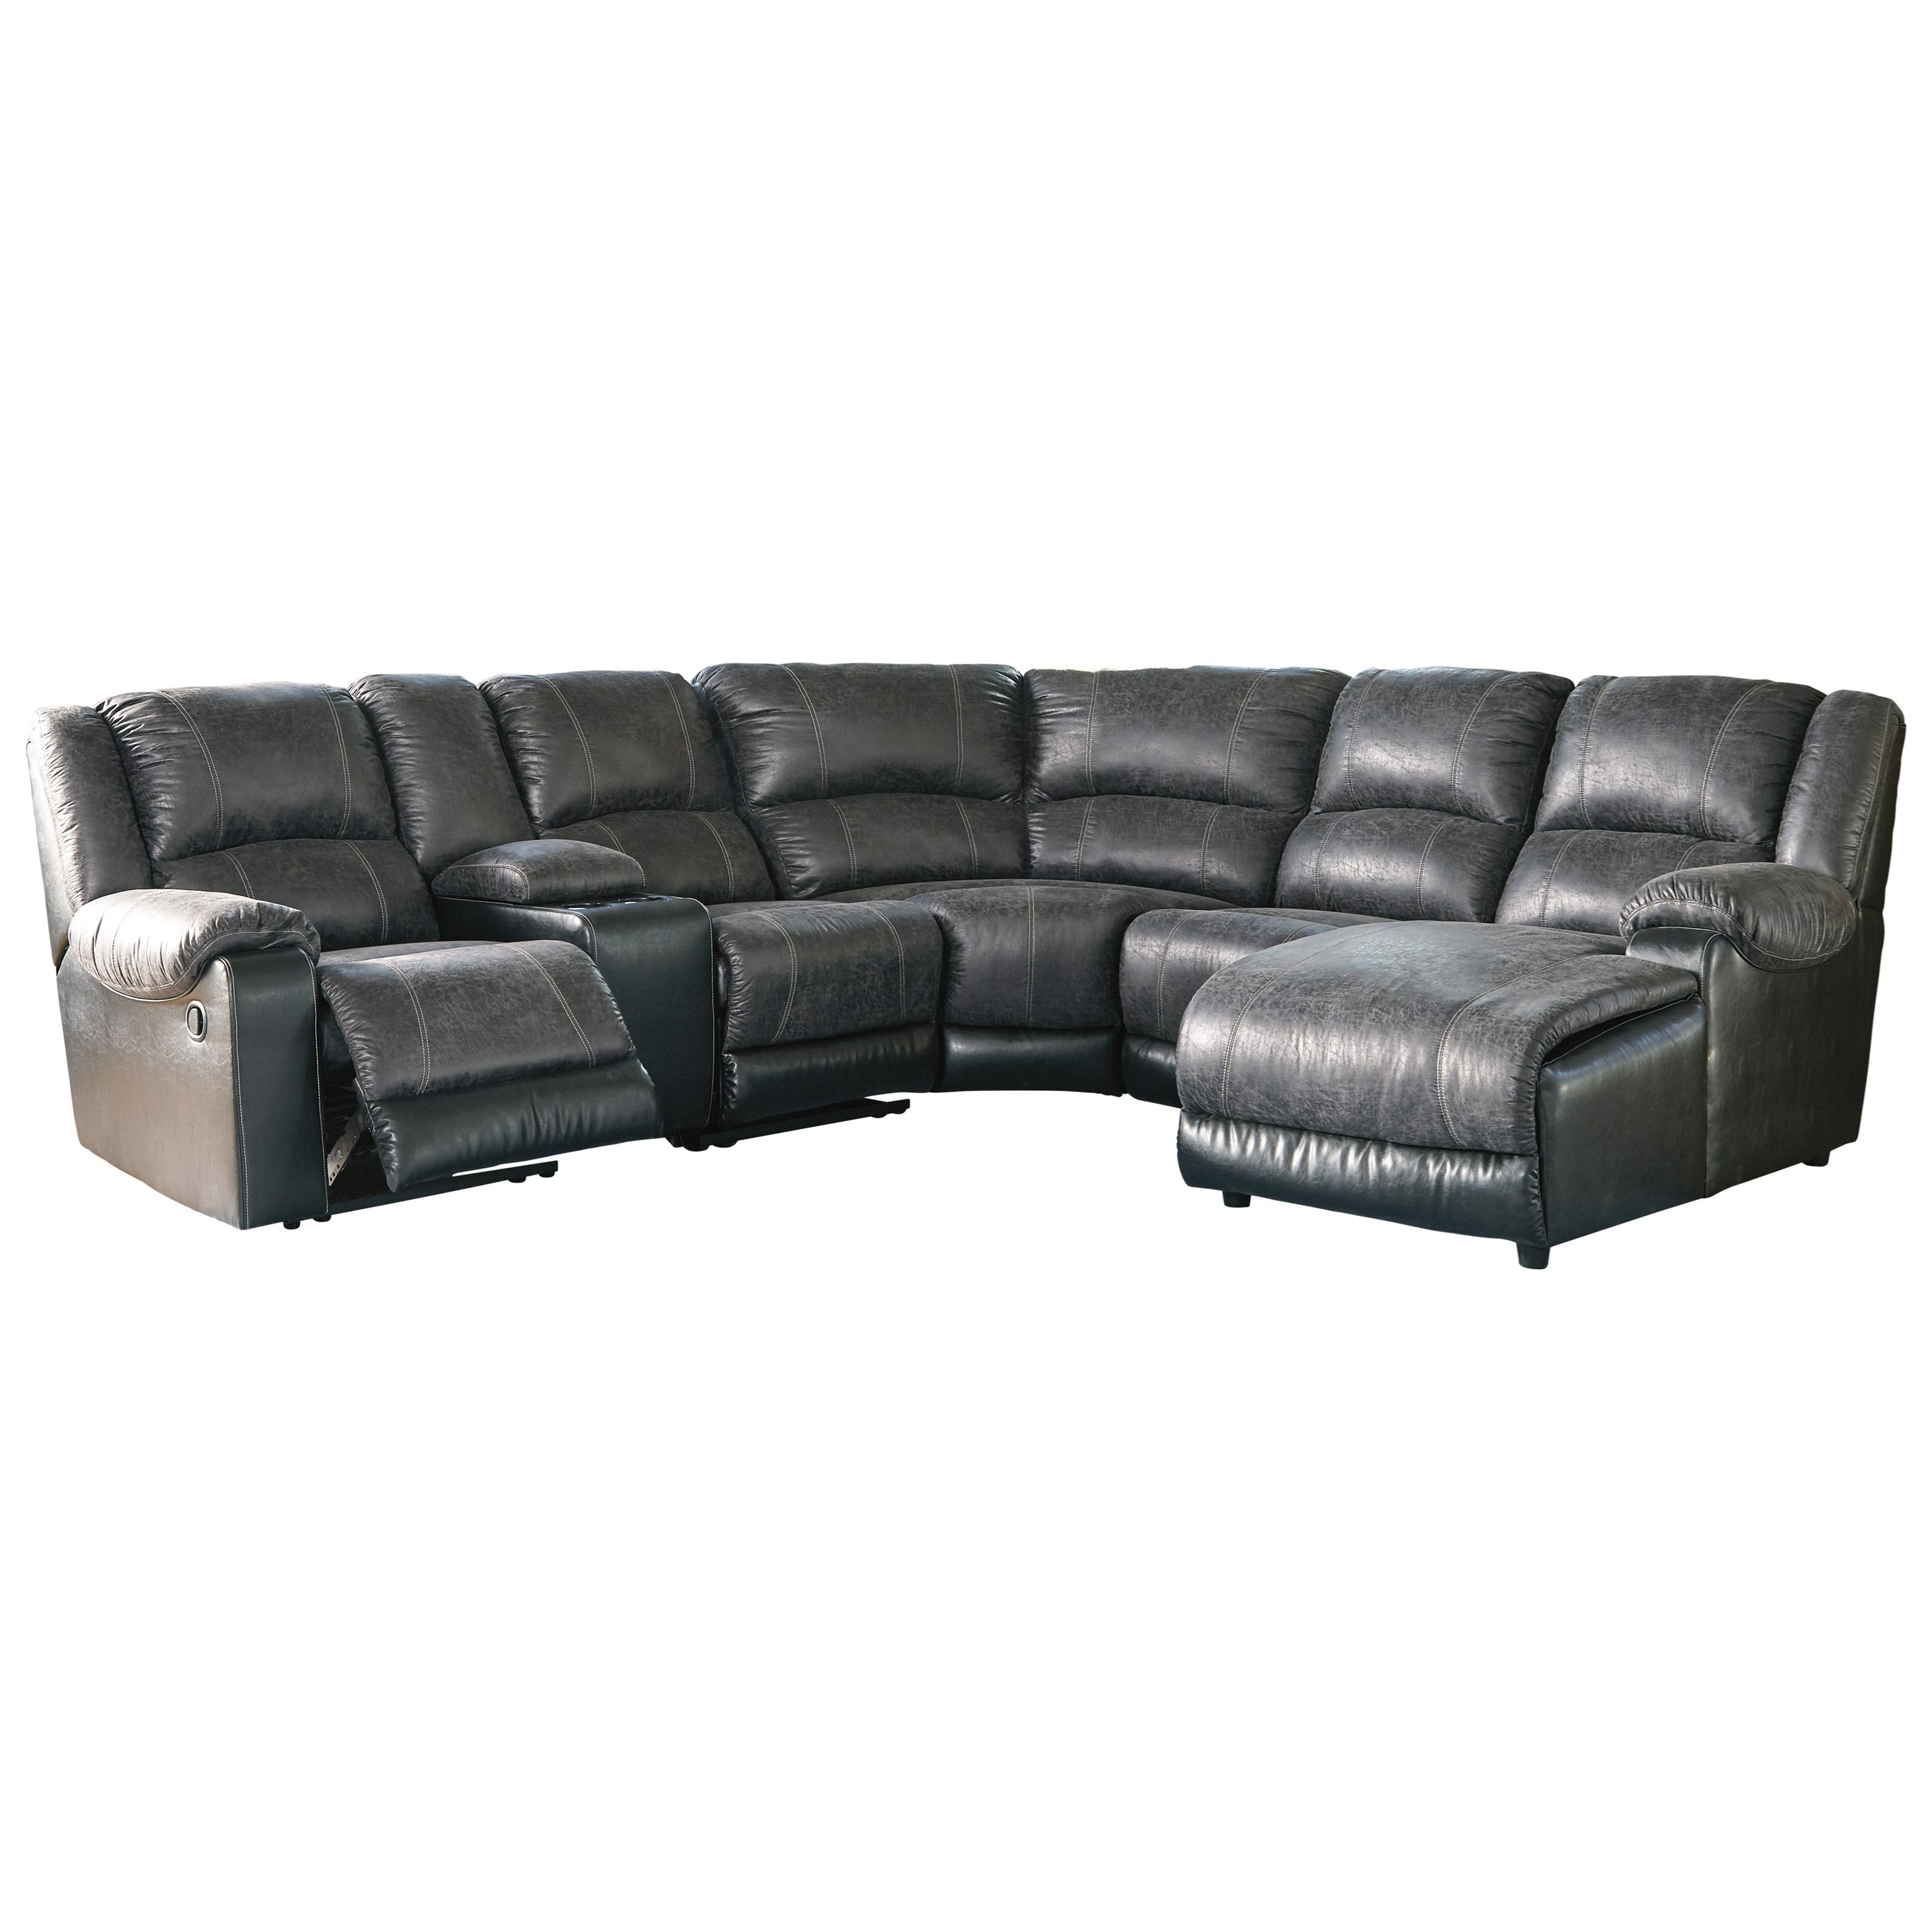 Signature Design by Ashley Nantahala Faux Leather Reclining Sectional with Chaise u0026 Console ...